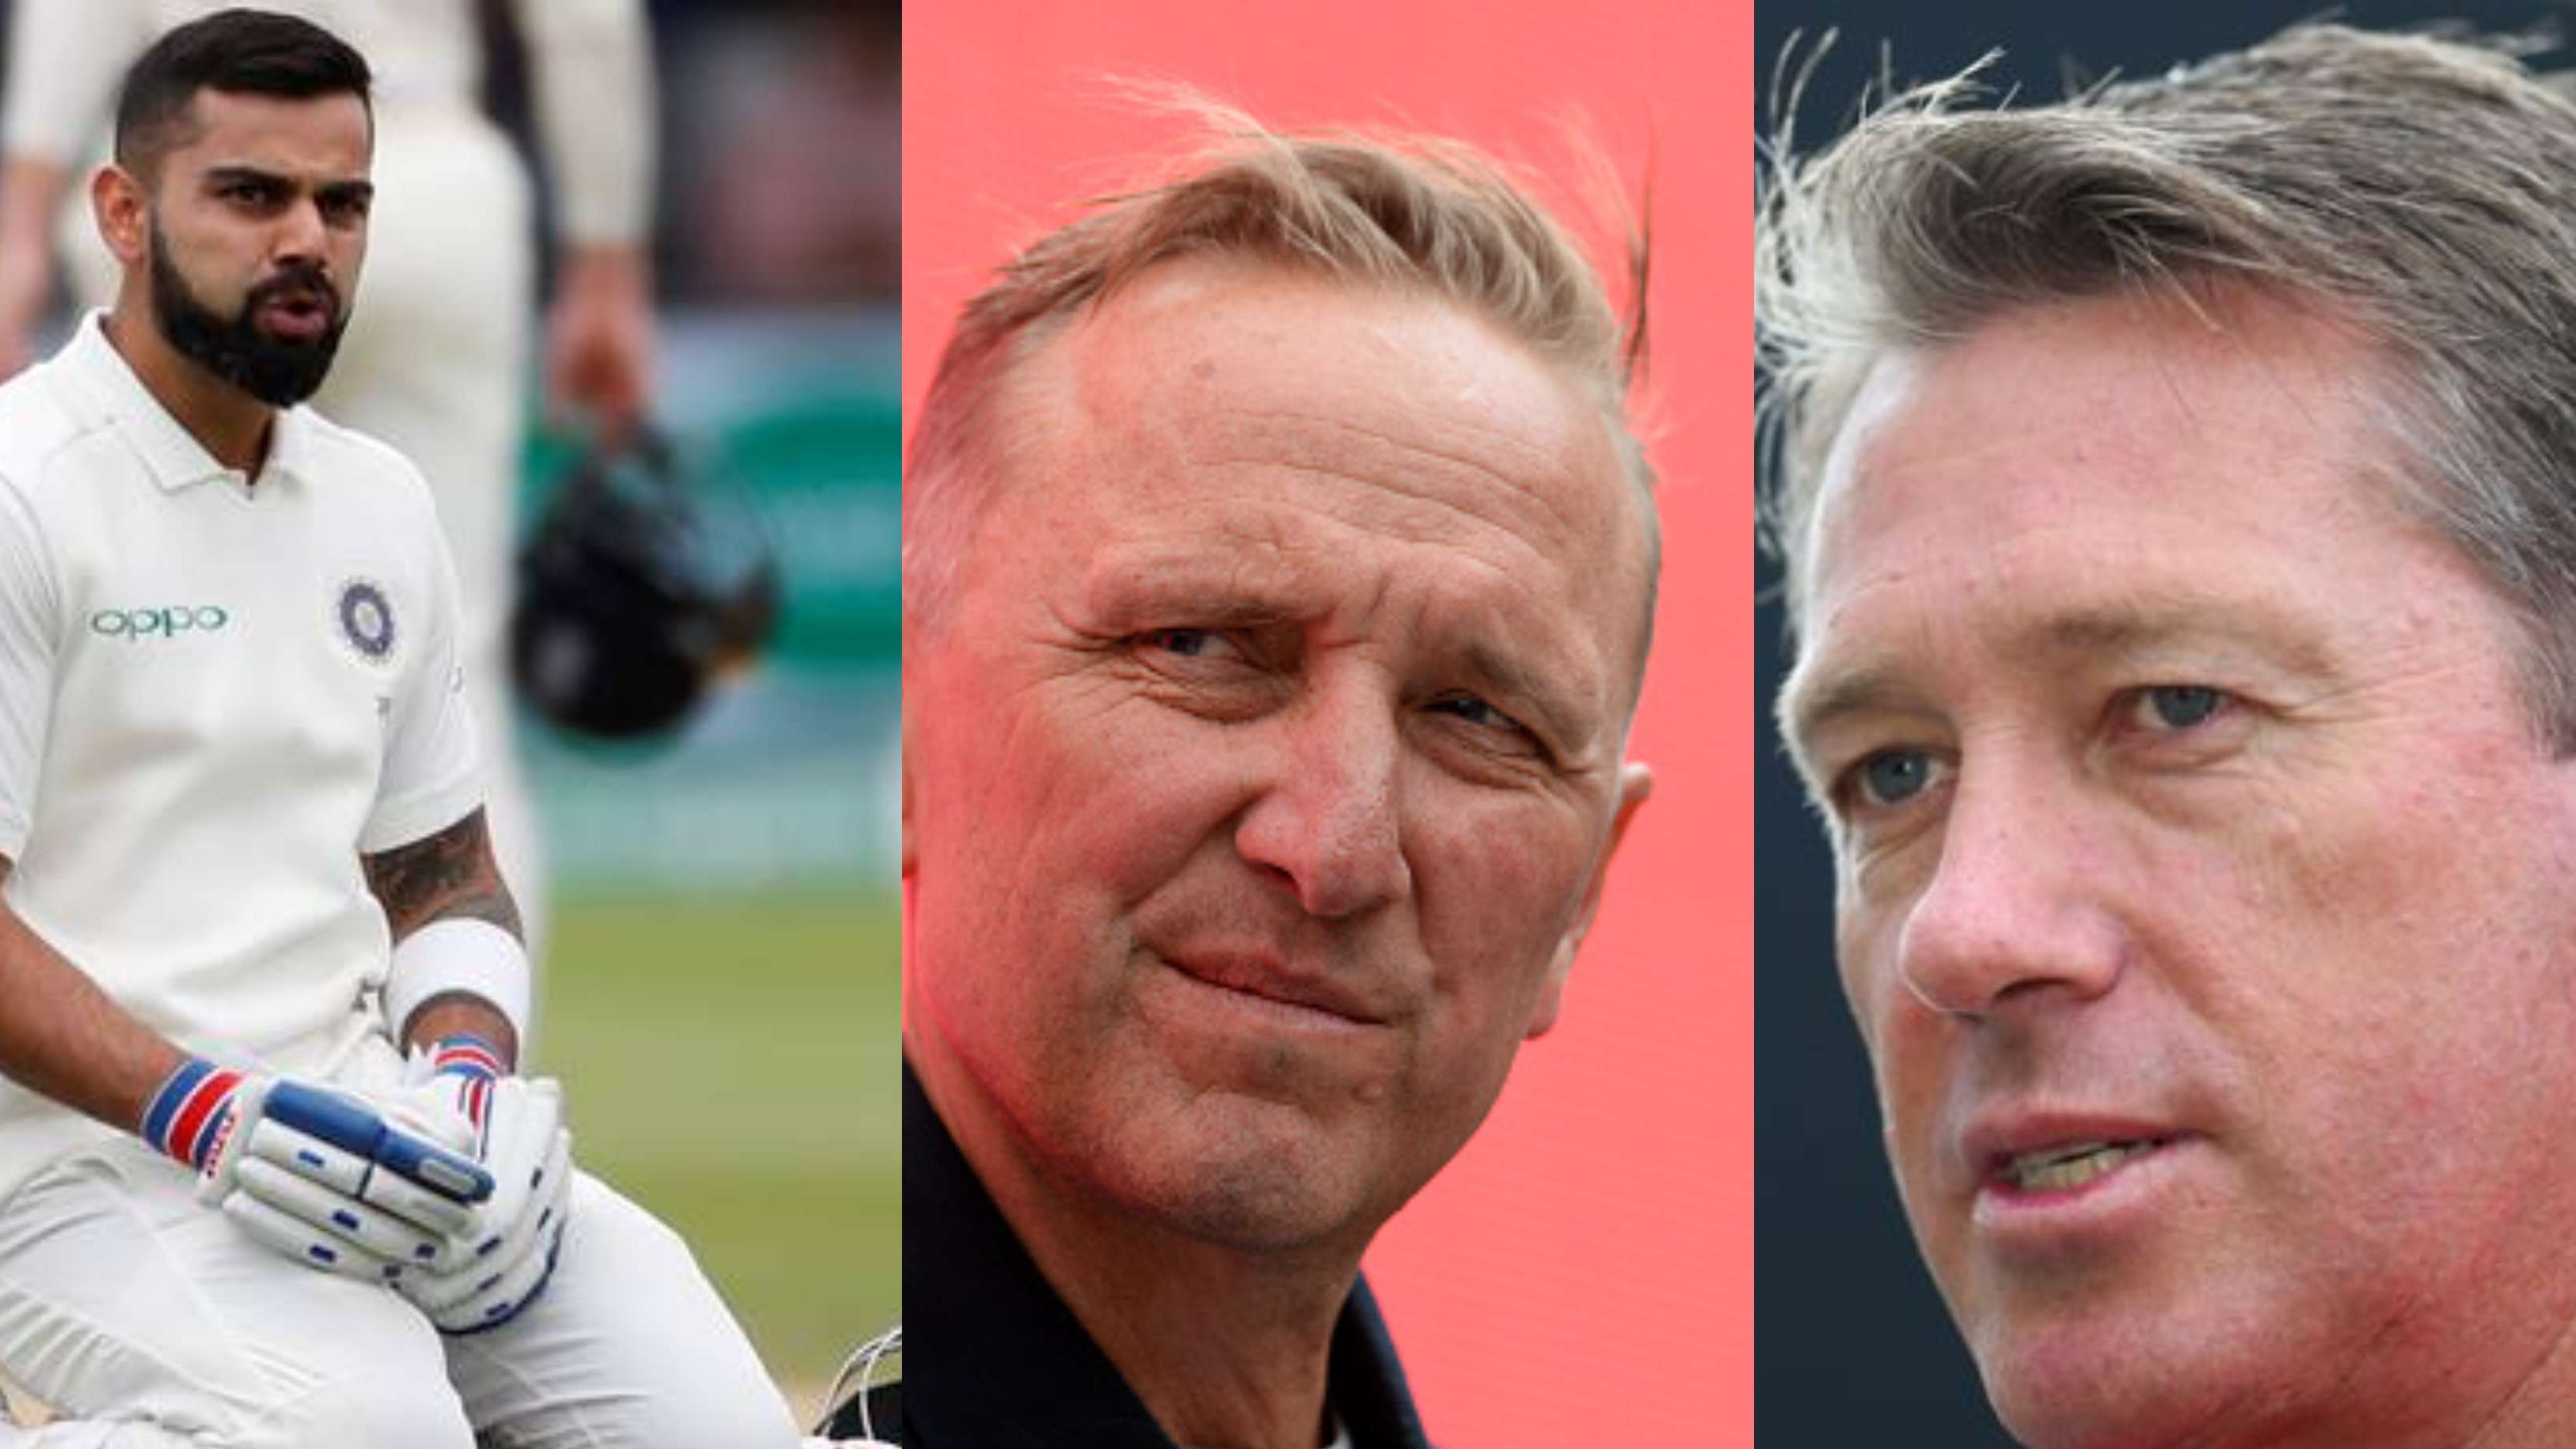 WATCH: Allan Donald picks his all-time best XI, gets criticized for ignoring the Asian cricketers